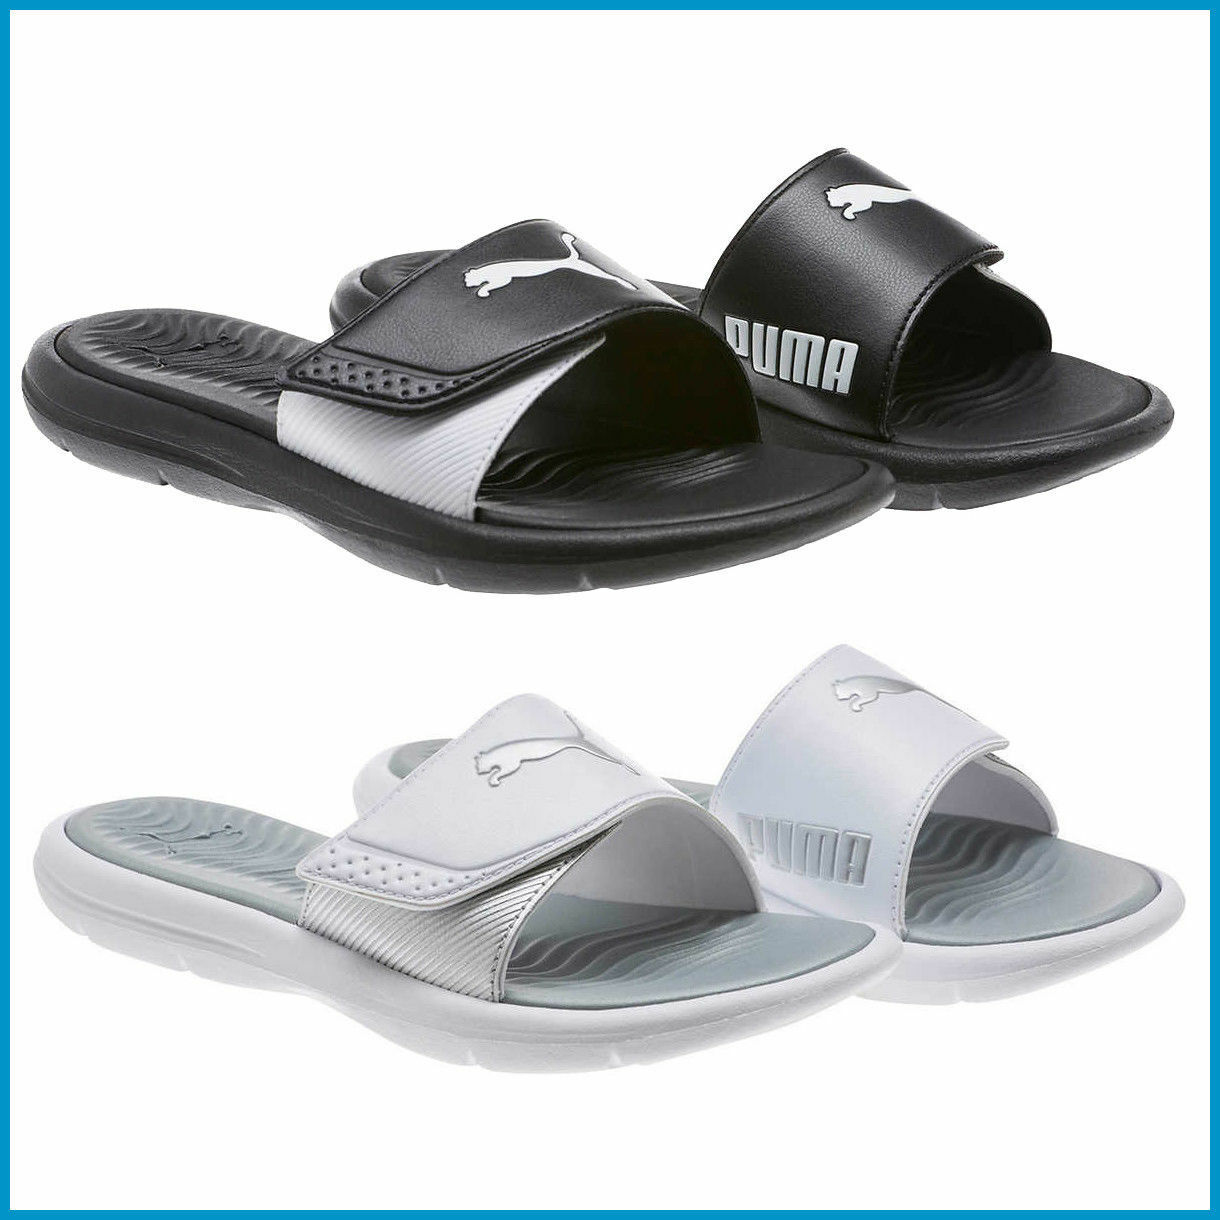 PRE  Puma Women Ladies' Slide PICK Sandal, Black / White, PICK Slide SIZE&COLOR 5e1772